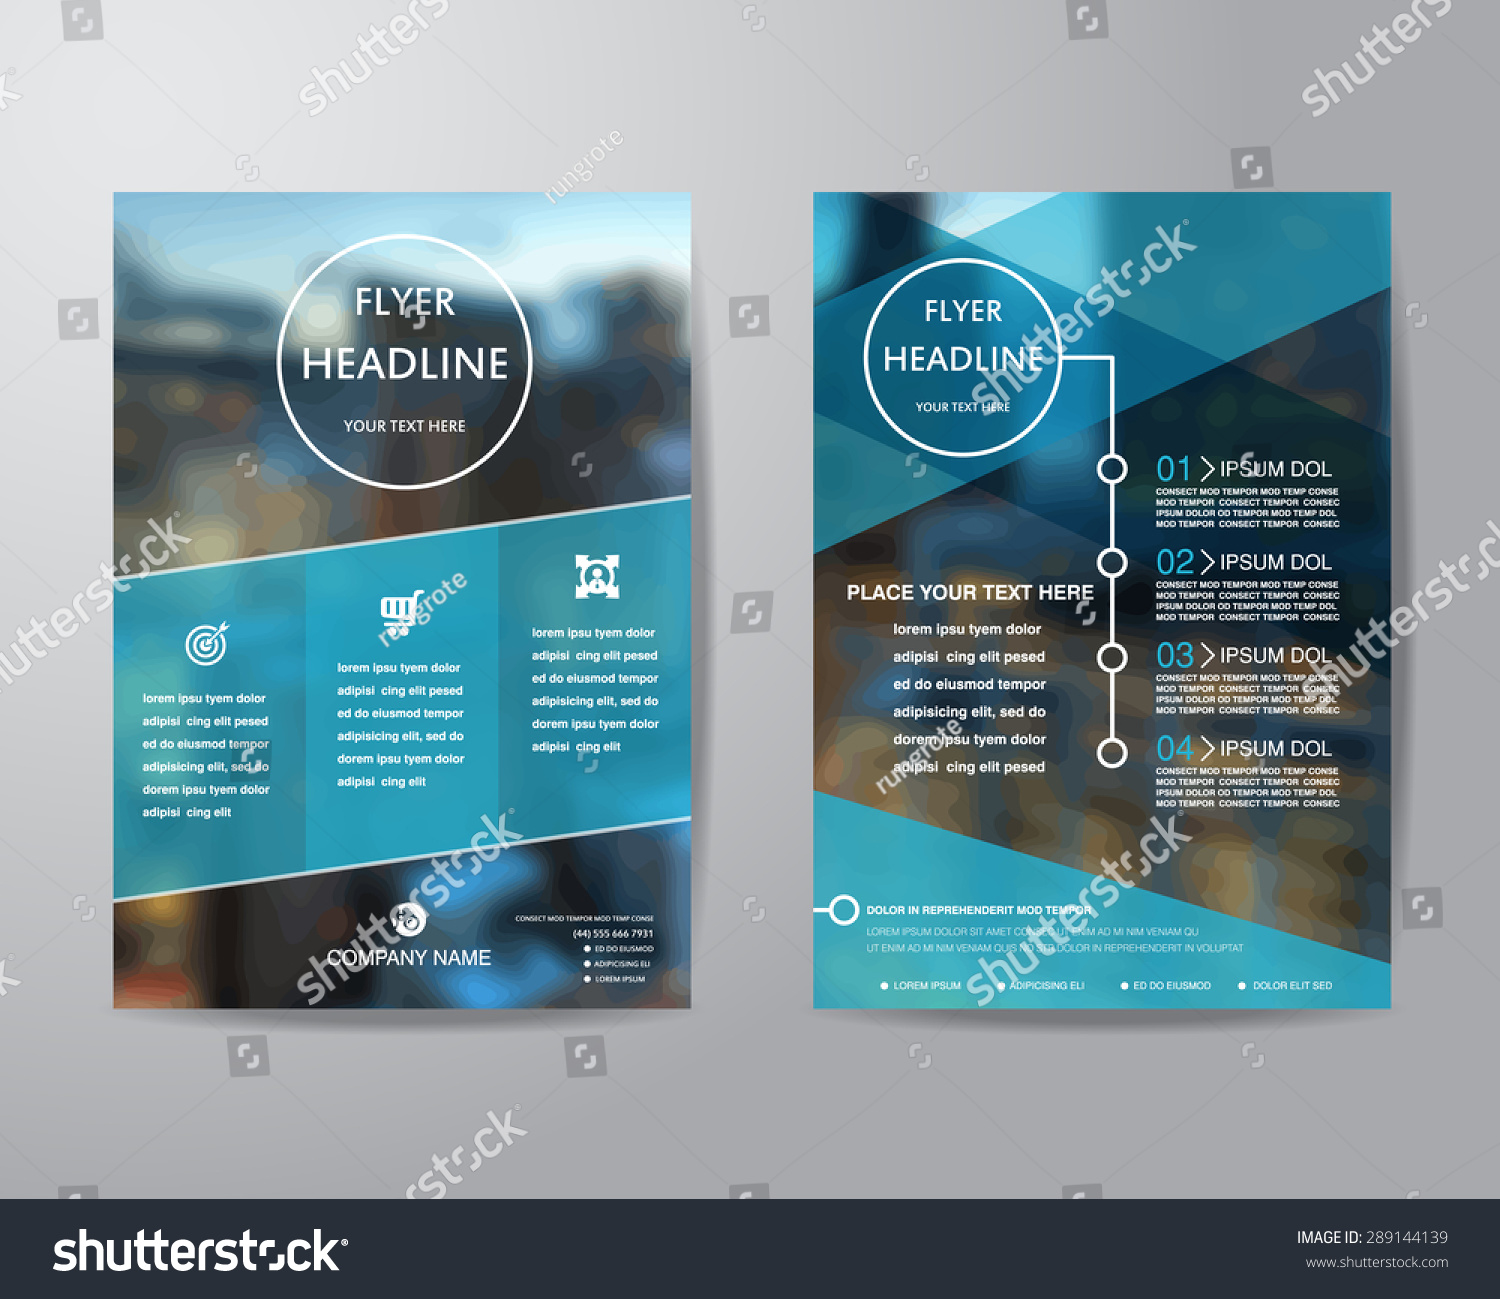 flyers layout template free - business brochure flyer design layout template stock